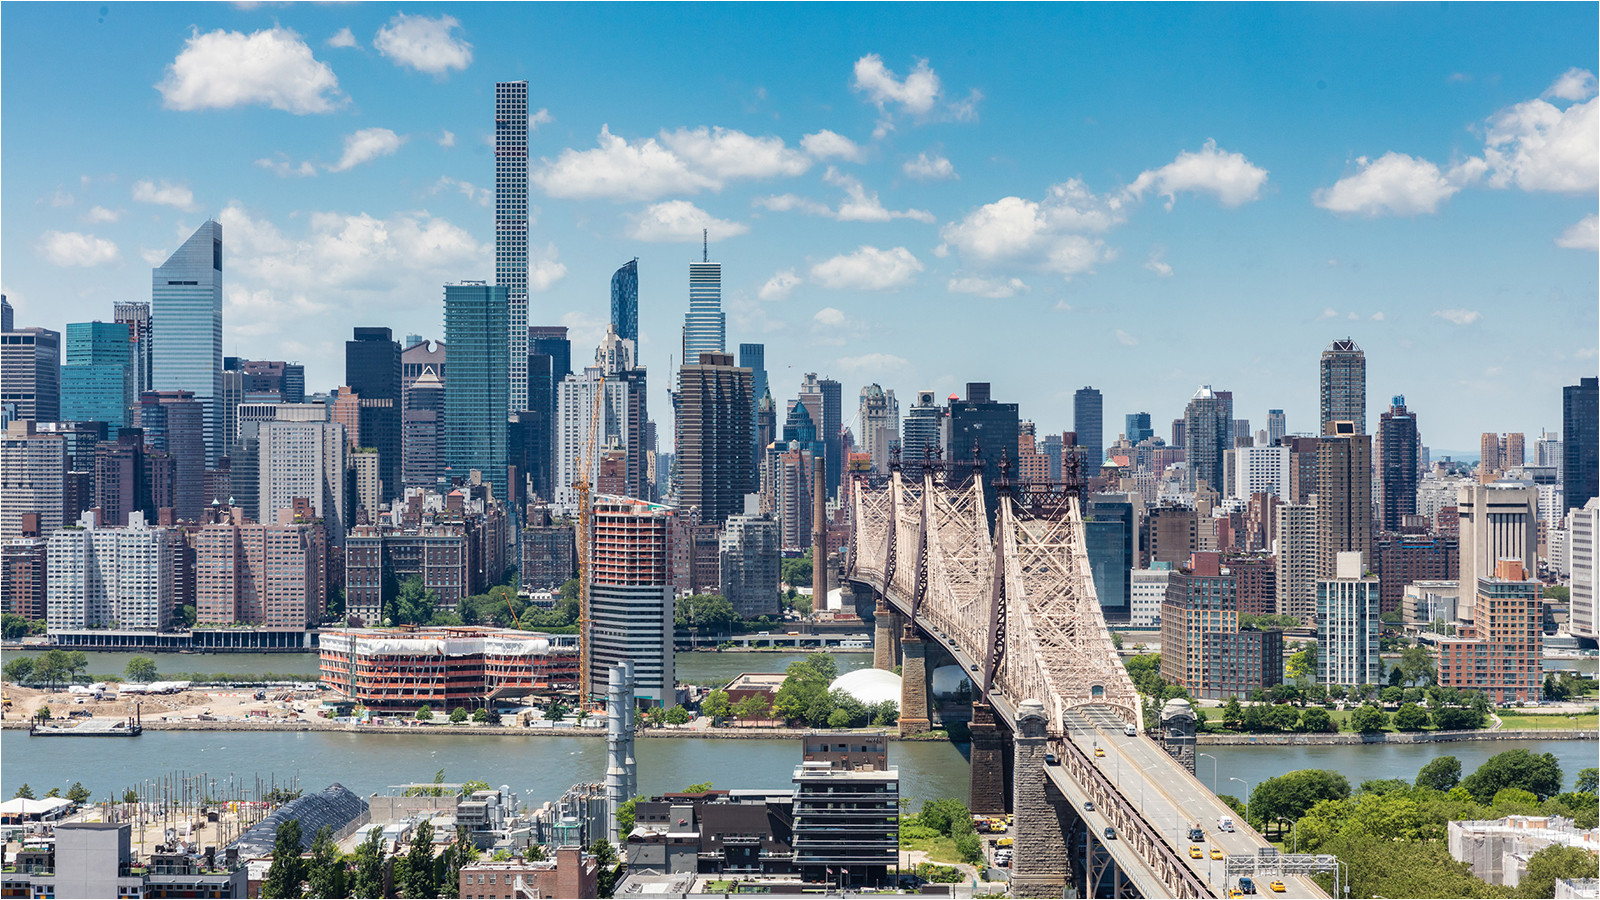 American Lease Long island City Ny 11101 1 Qps tower 42 20 24th Street Nyc Rental Apartments Cityrealty